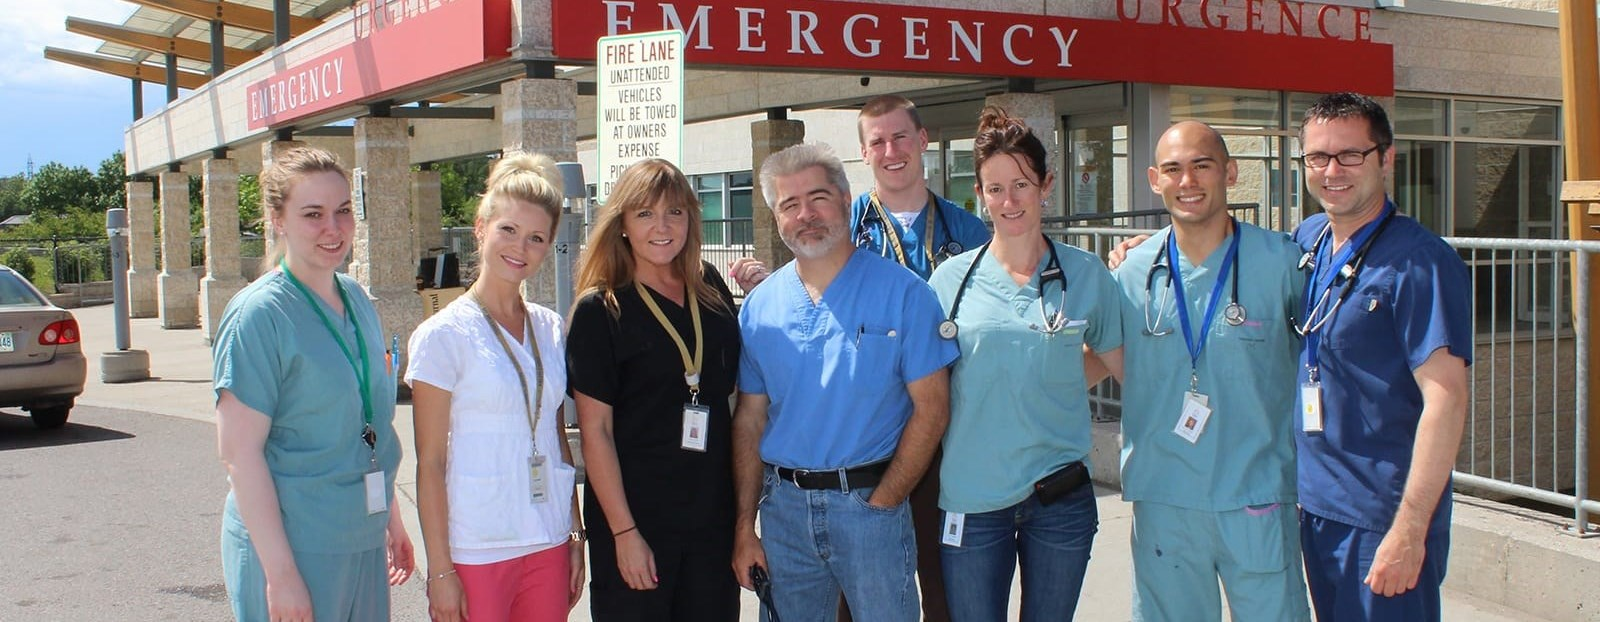 doctors and nurses outside of emergency room